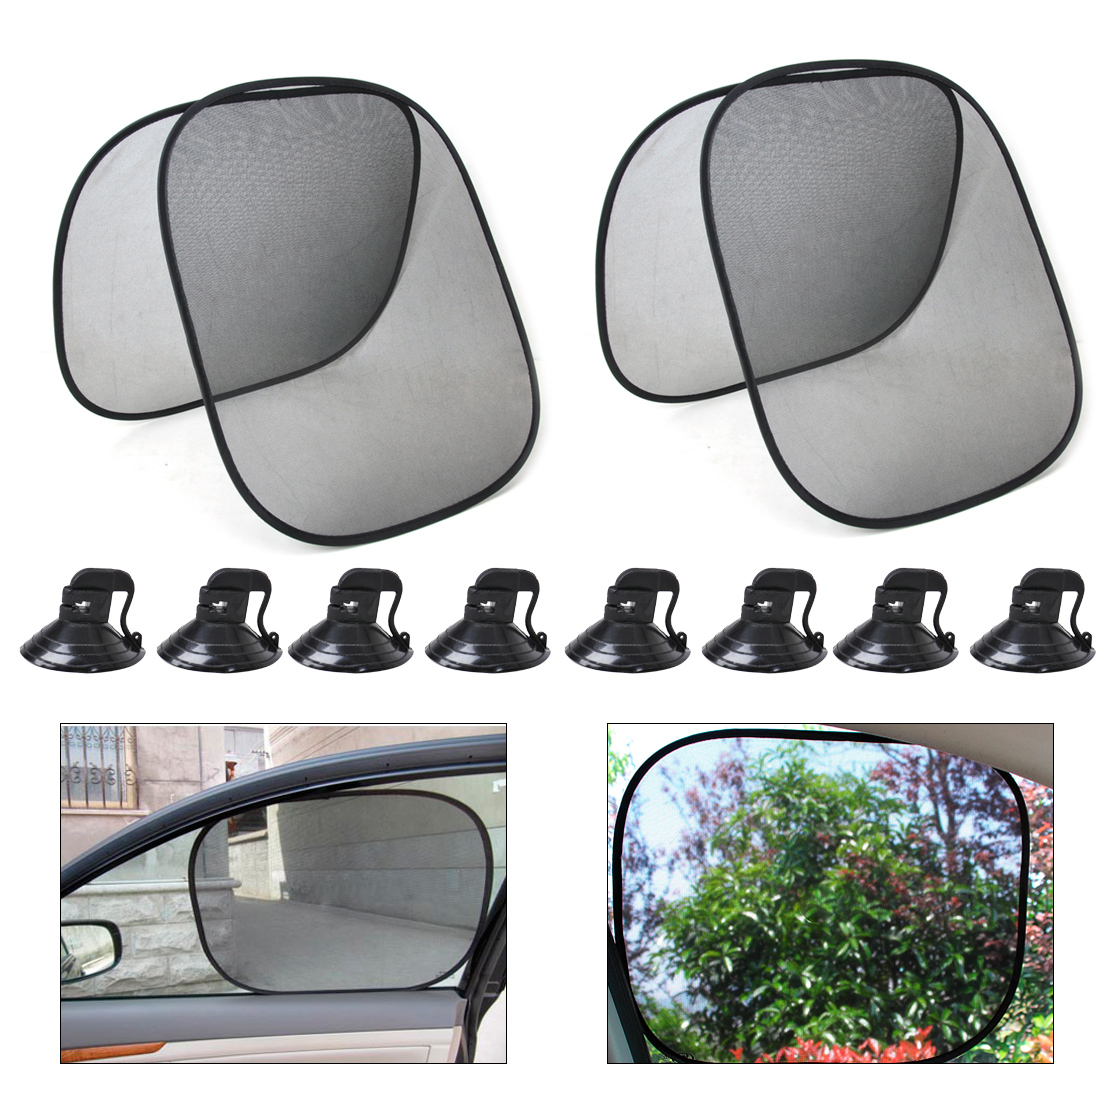 CITALL 4pcs Foldable Car Side Window Sun Shade Mesh-pattern Screen Visor Shield Cover for BMW E90 VW Golf Audi A4 A6 Mazda 3 Kia image